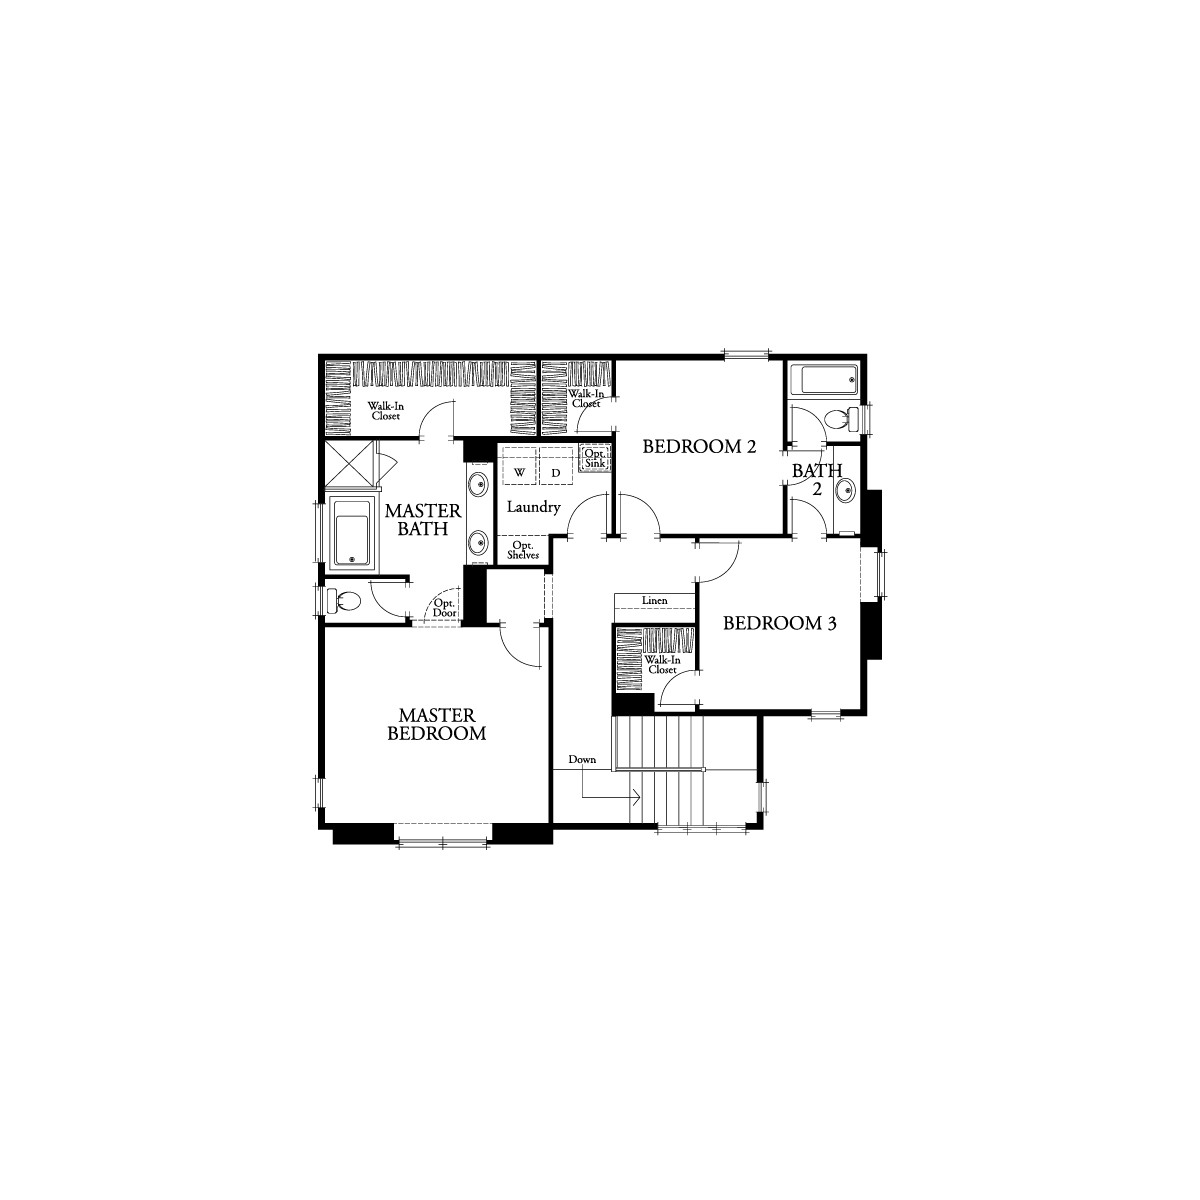 Second floor residence 1 floor plan | Waverly at New Haven in Ontario Ranch, CA | Brookfield Residential